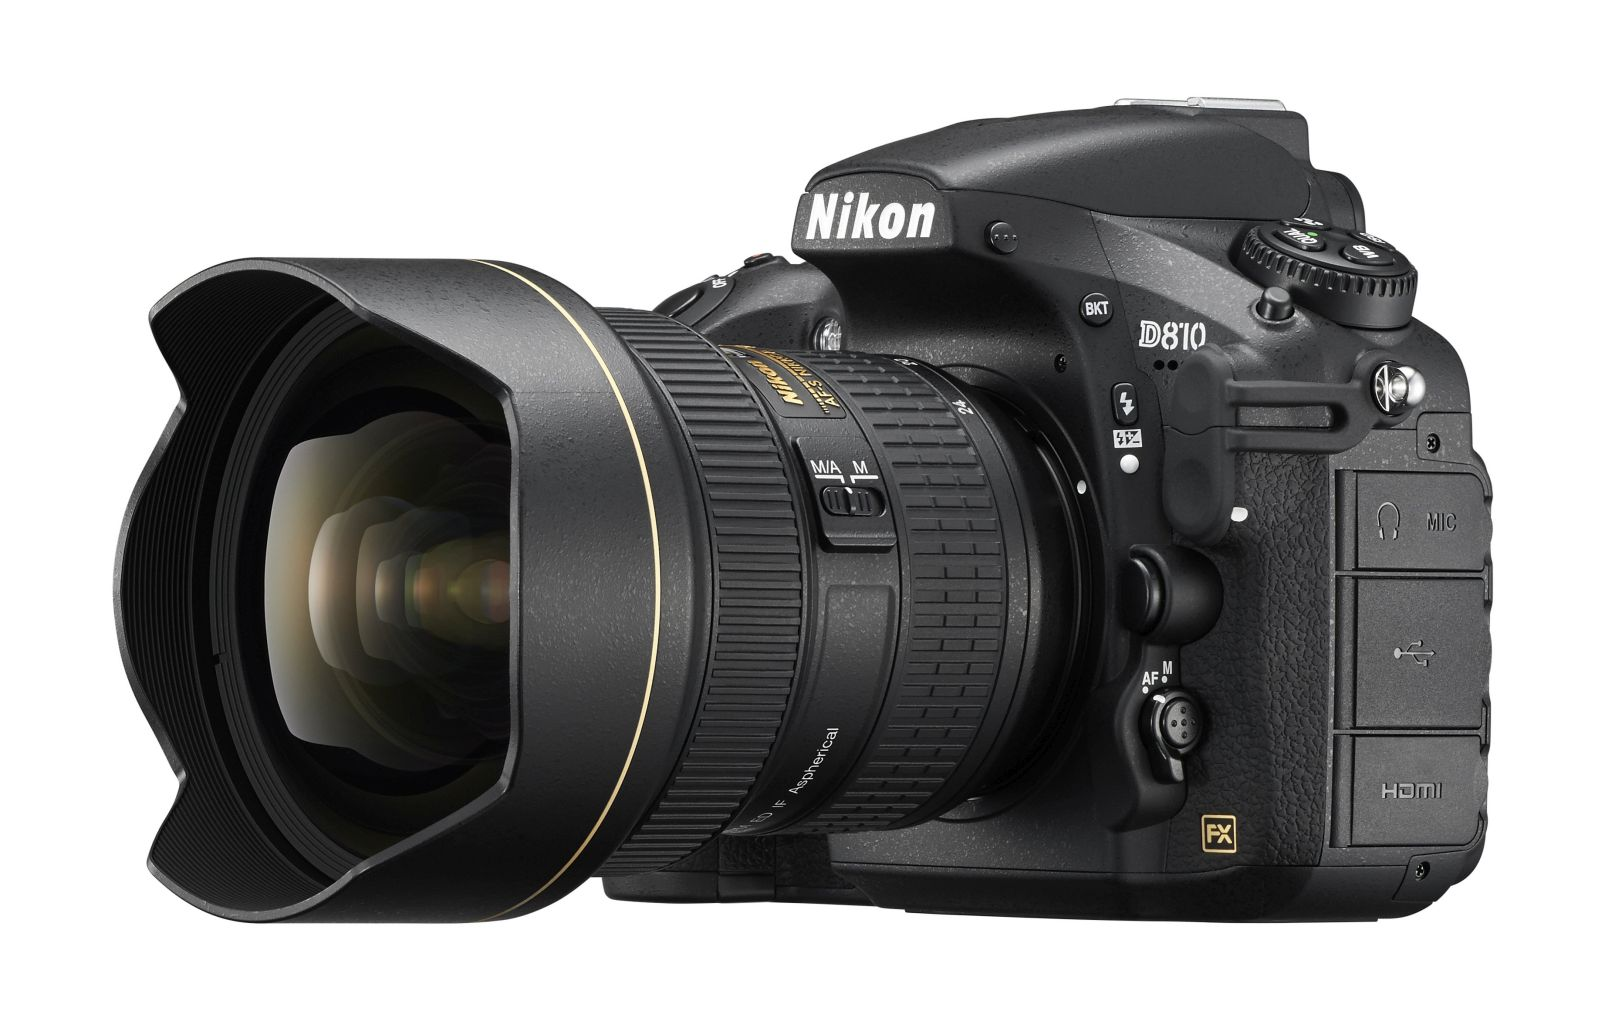 Nikon D810 Camera Receives Firmware 1 10 - Download and